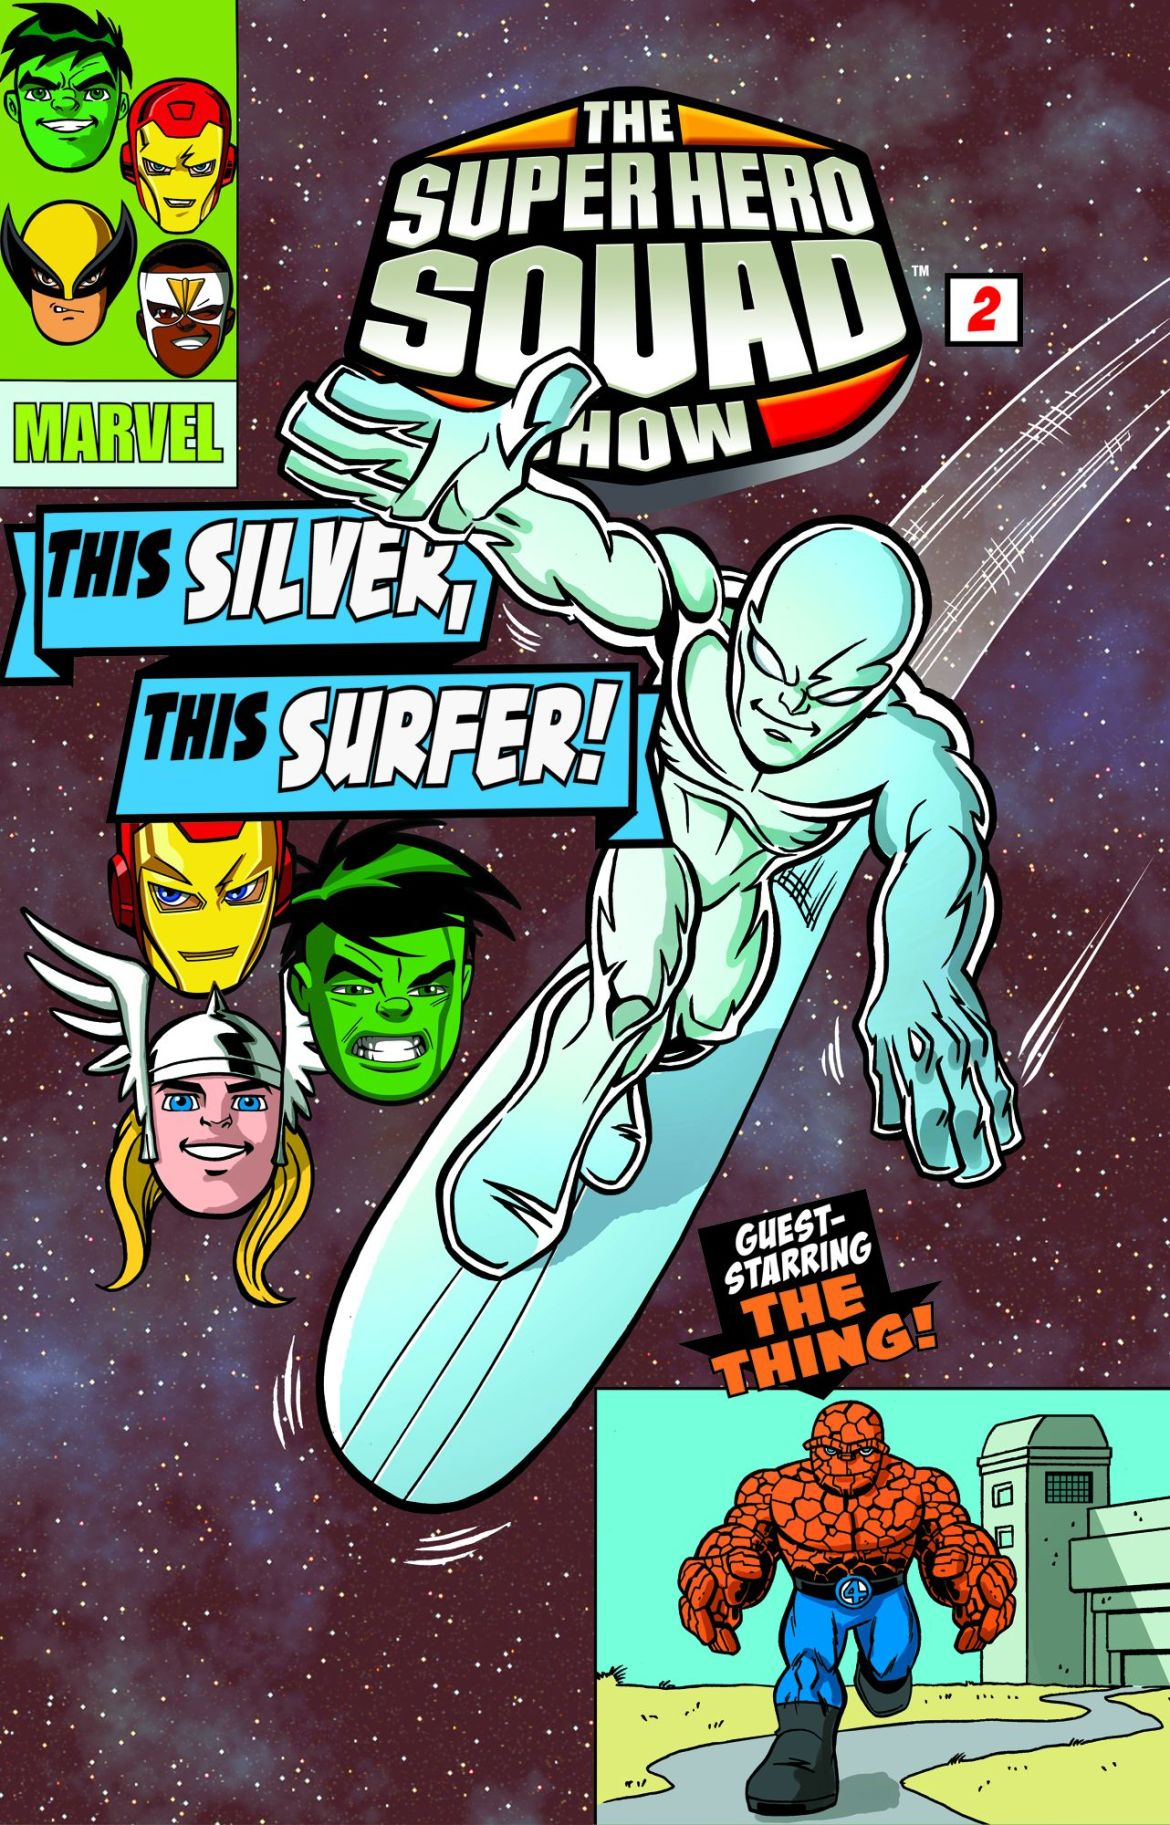 SuperHeroSquadShow_ThisSilverThisSurfer Surfer and Thing spotlighted in latest Super Hero Squad Show